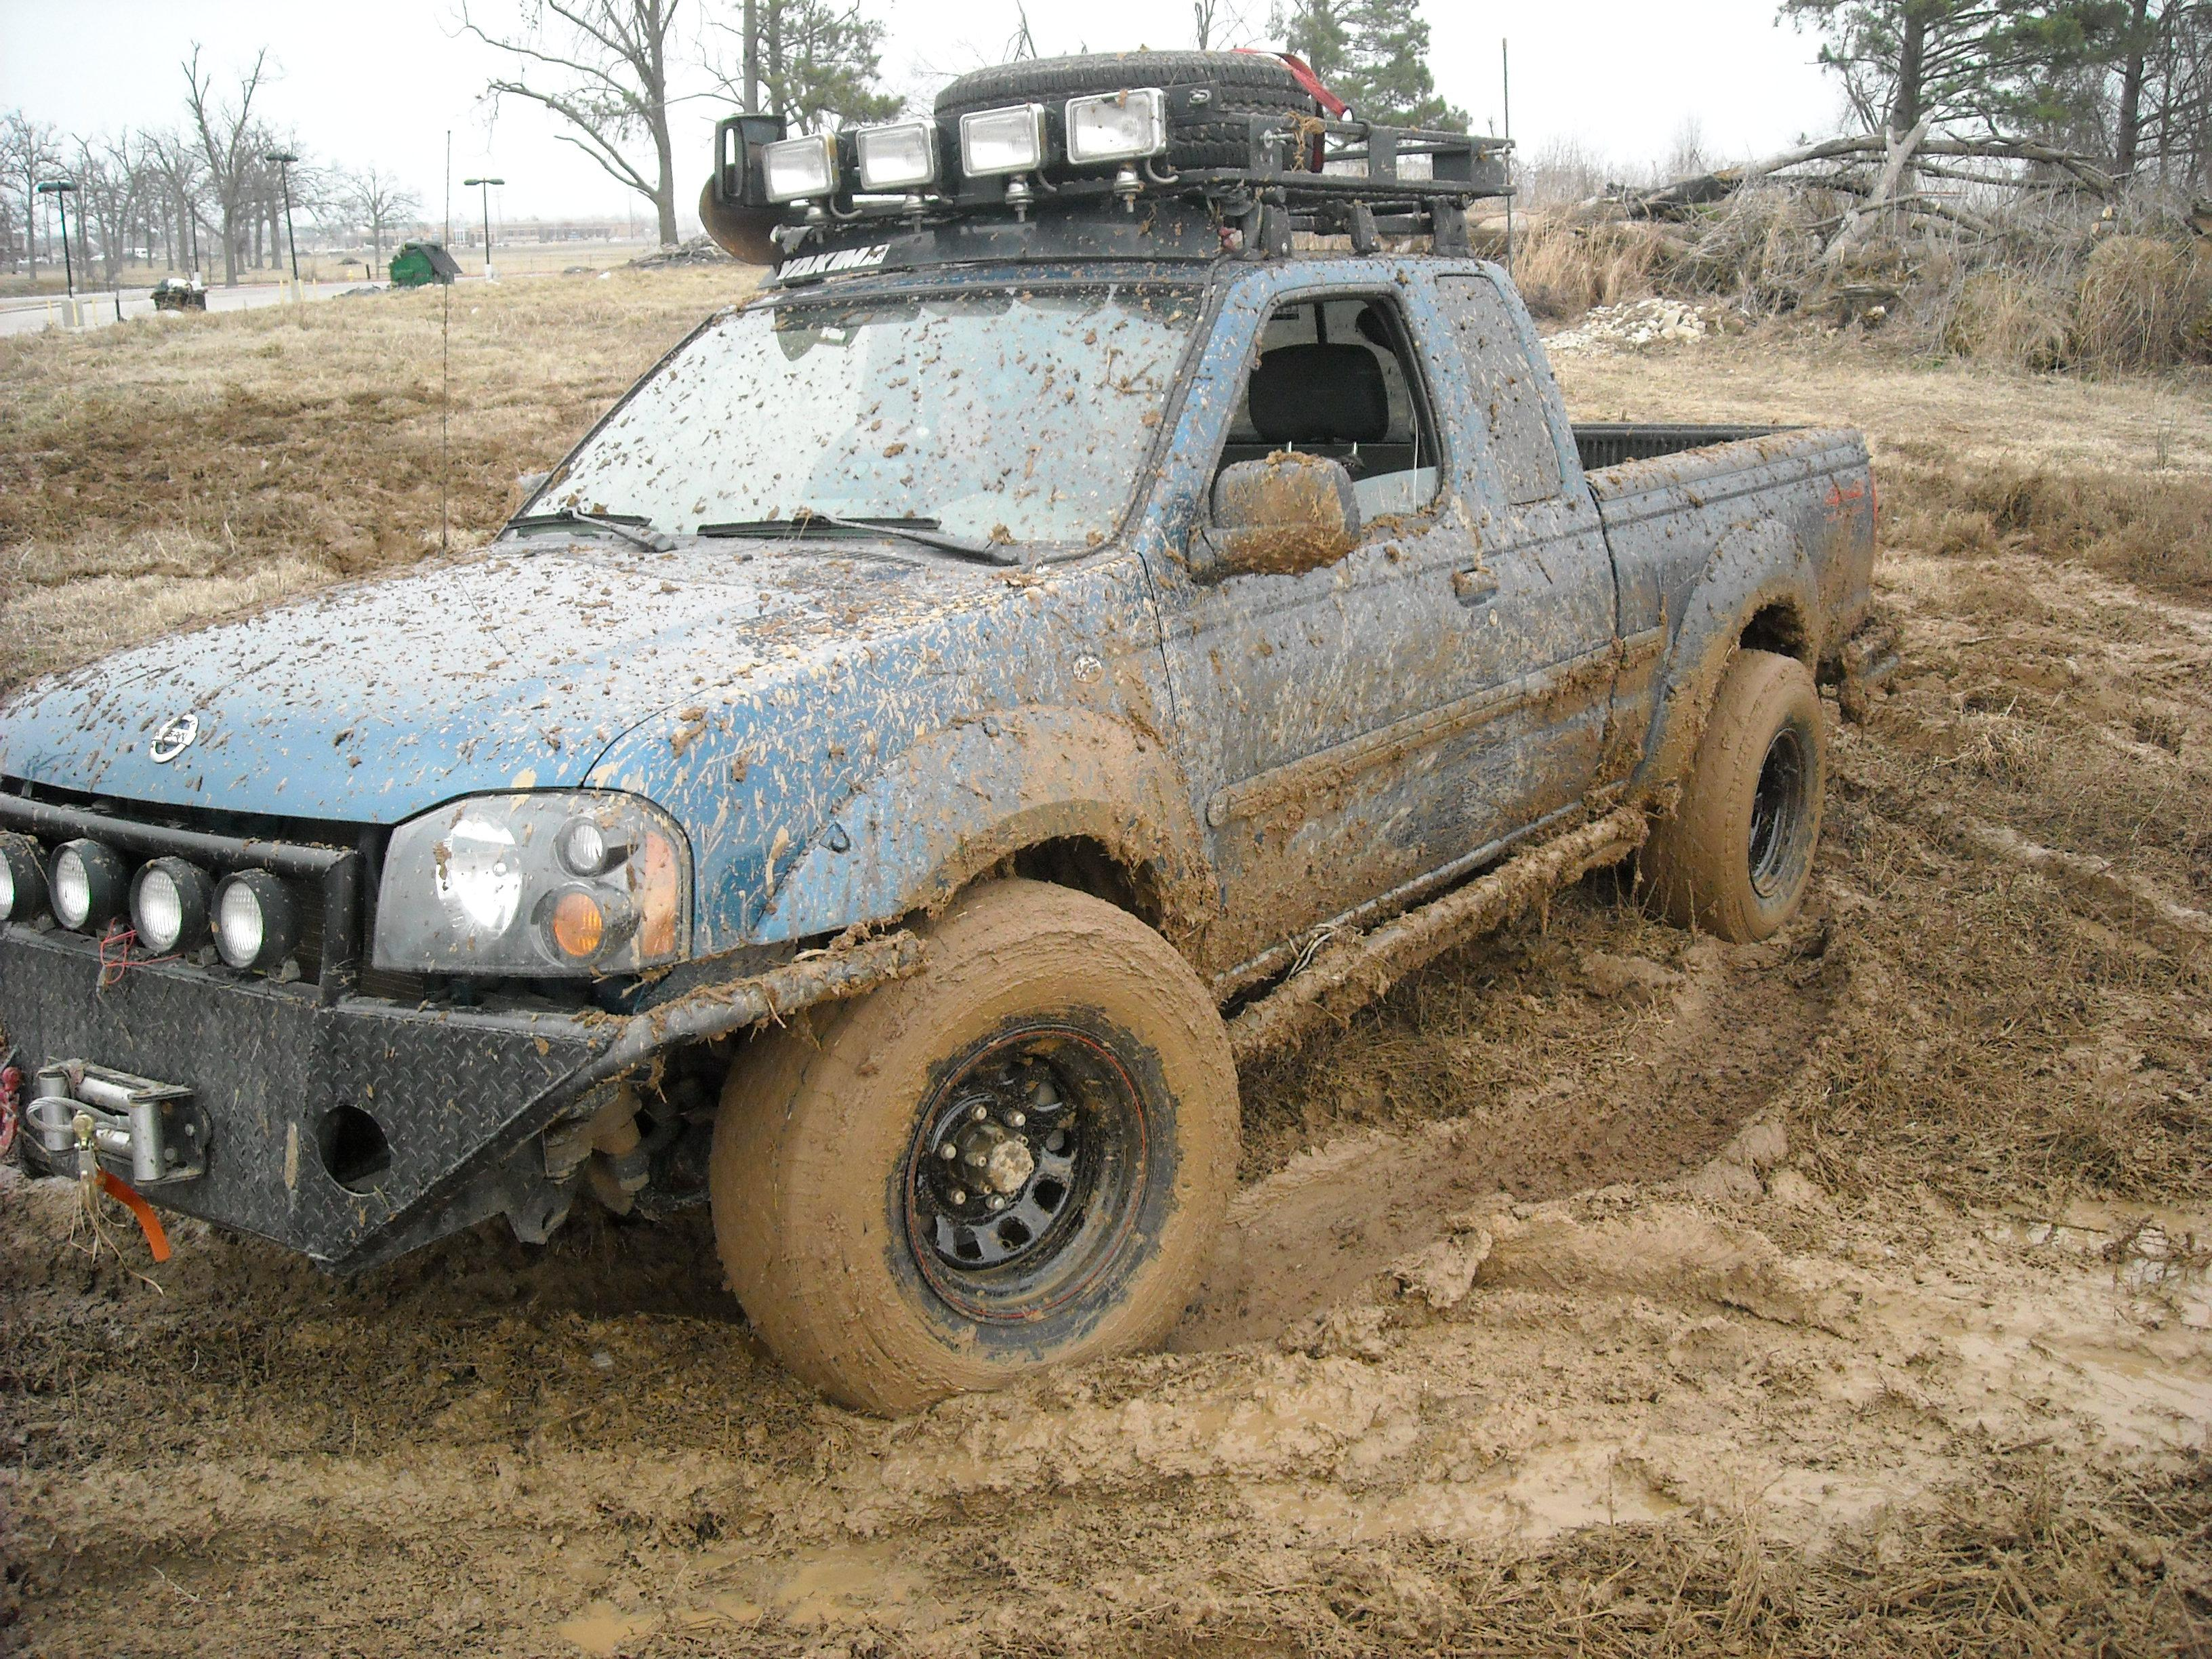 blufrontier 2004 nissan frontier king cab specs photos modification info at cardomain. Black Bedroom Furniture Sets. Home Design Ideas